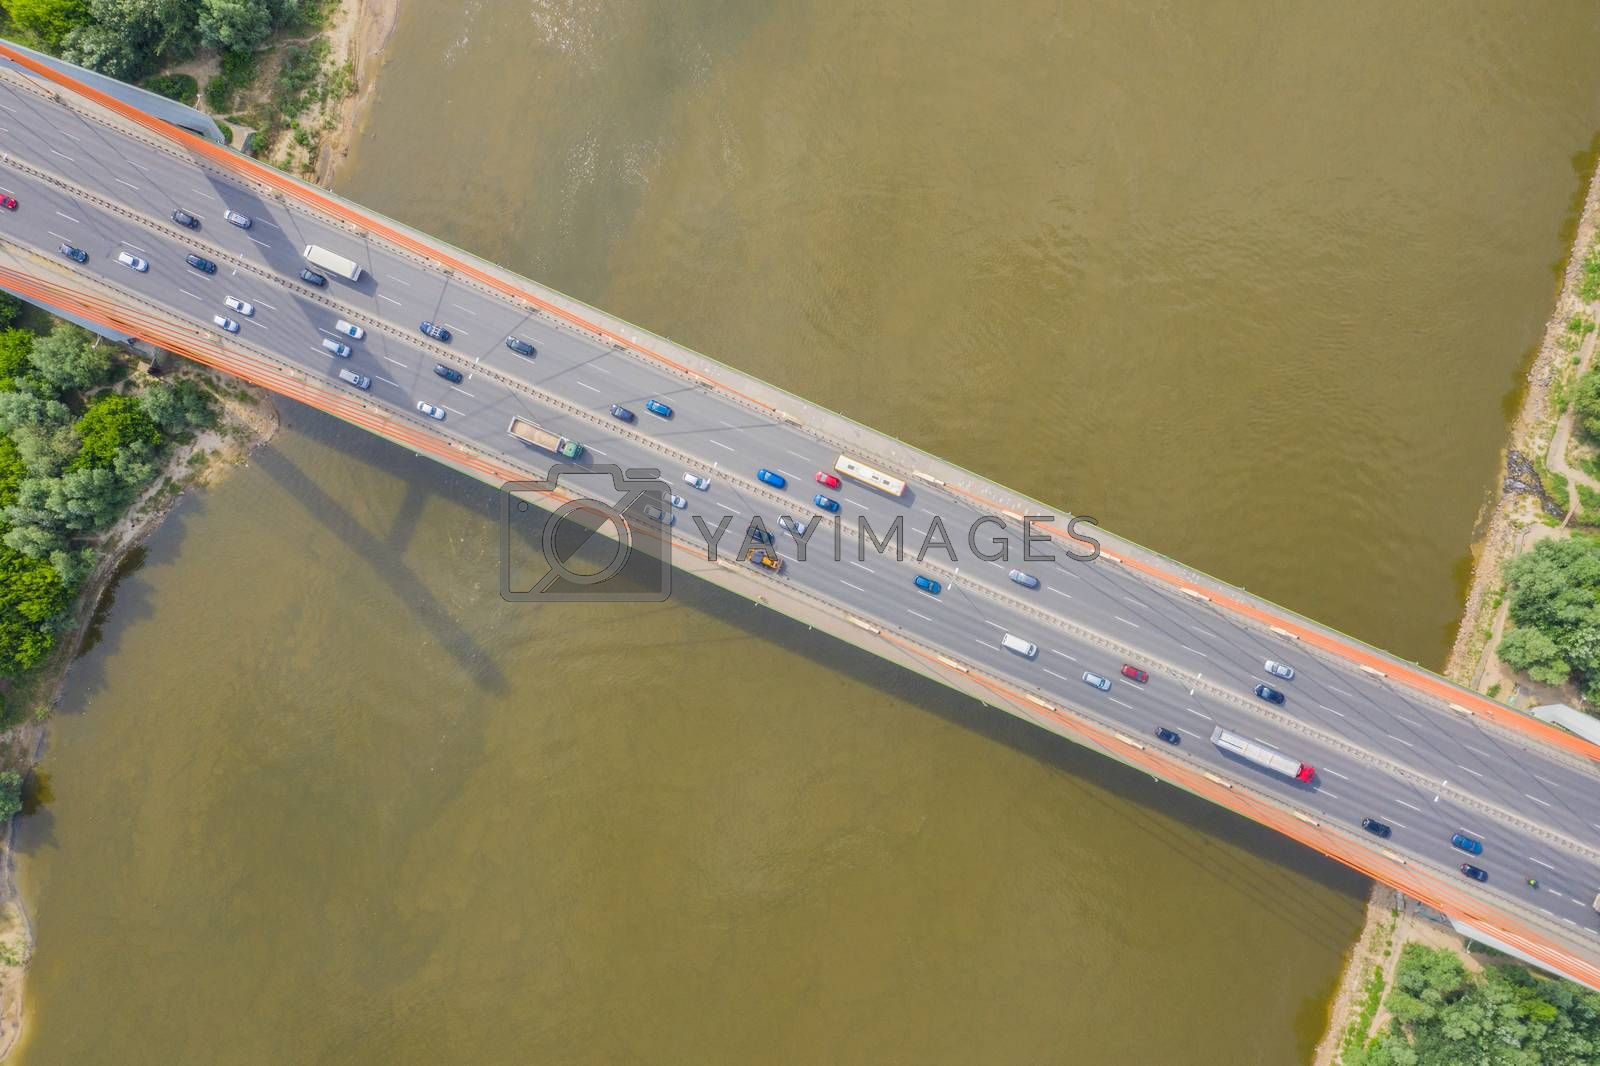 City car moving at highway bridge on background smooth river surface drone view. Aerial view